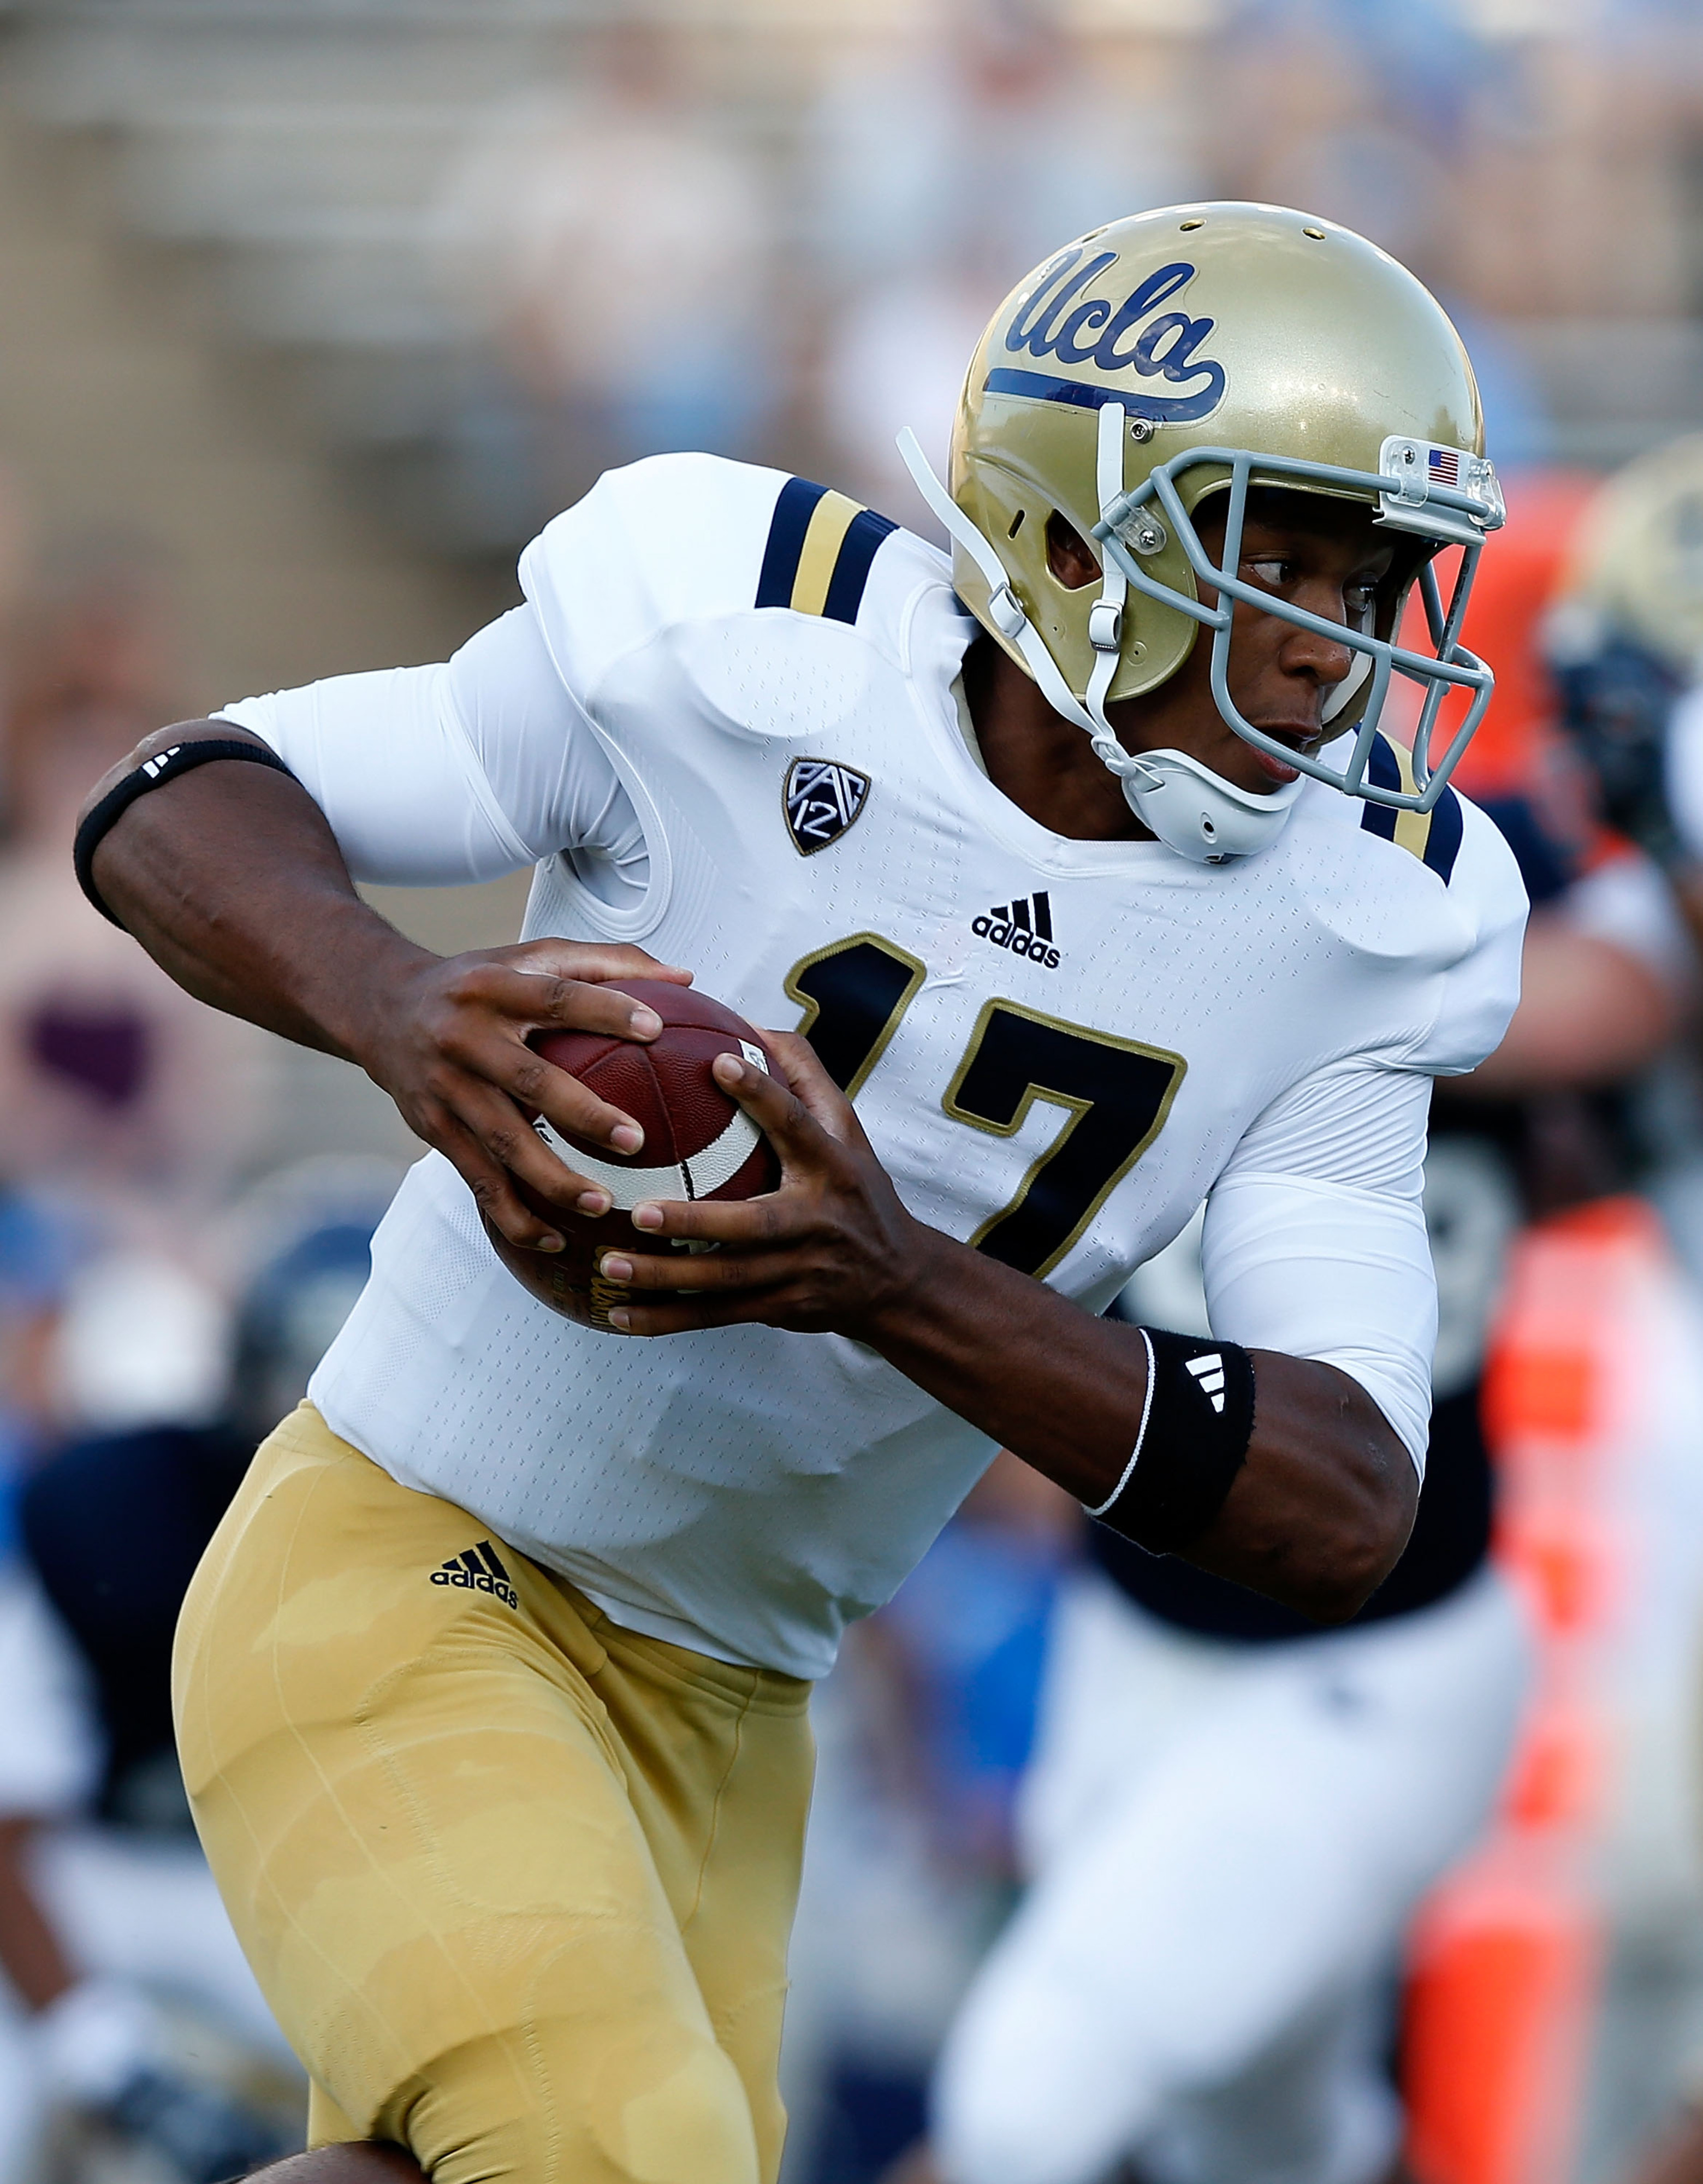 Brett Hundley is the best quarterback in the Pac-12 South right now.